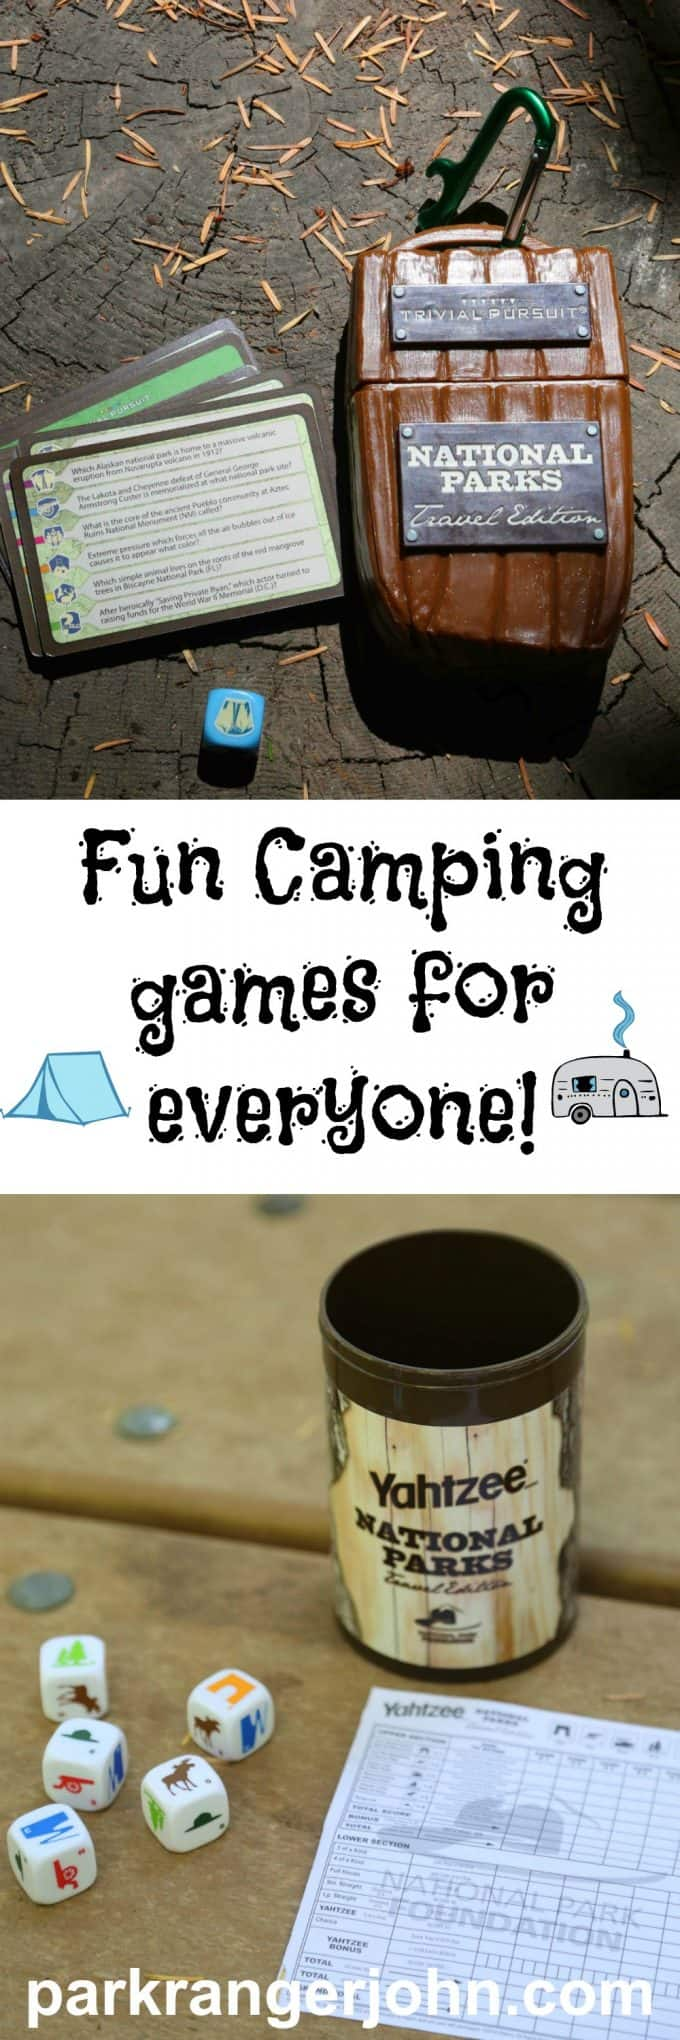 Fun Camping Games For The Whole Family Weather You Are Planning An Outdoor Church Or